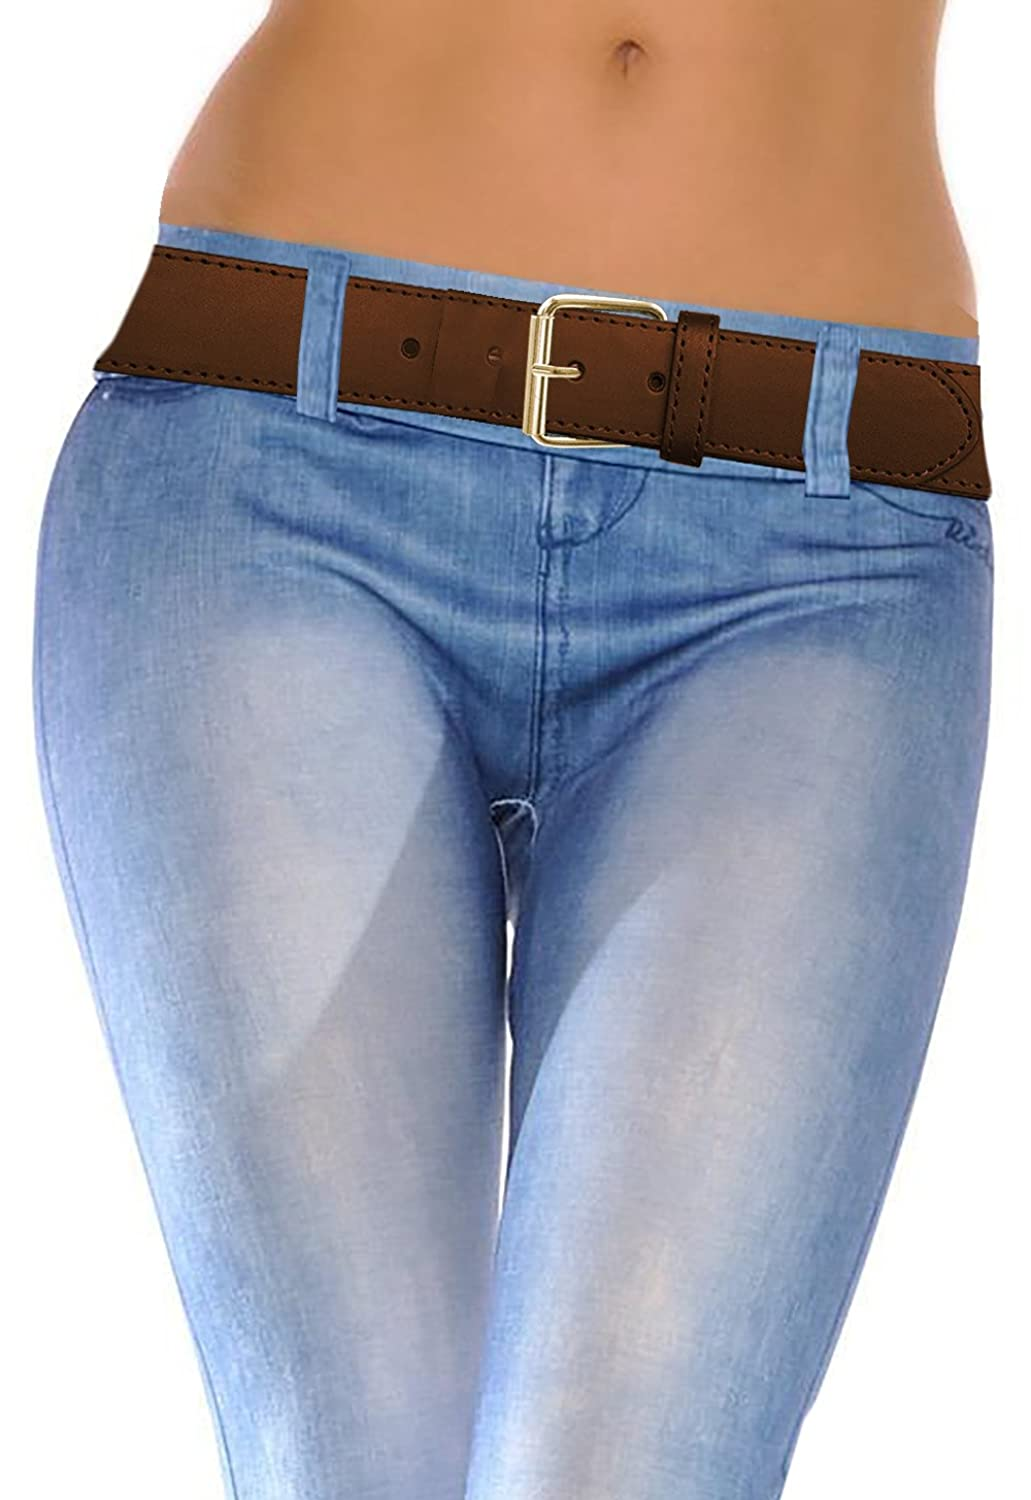 LUNA Top Quality Snap-On STITCH Gold Buckle Thick Wide Leather Belt - Brown - 4X Large